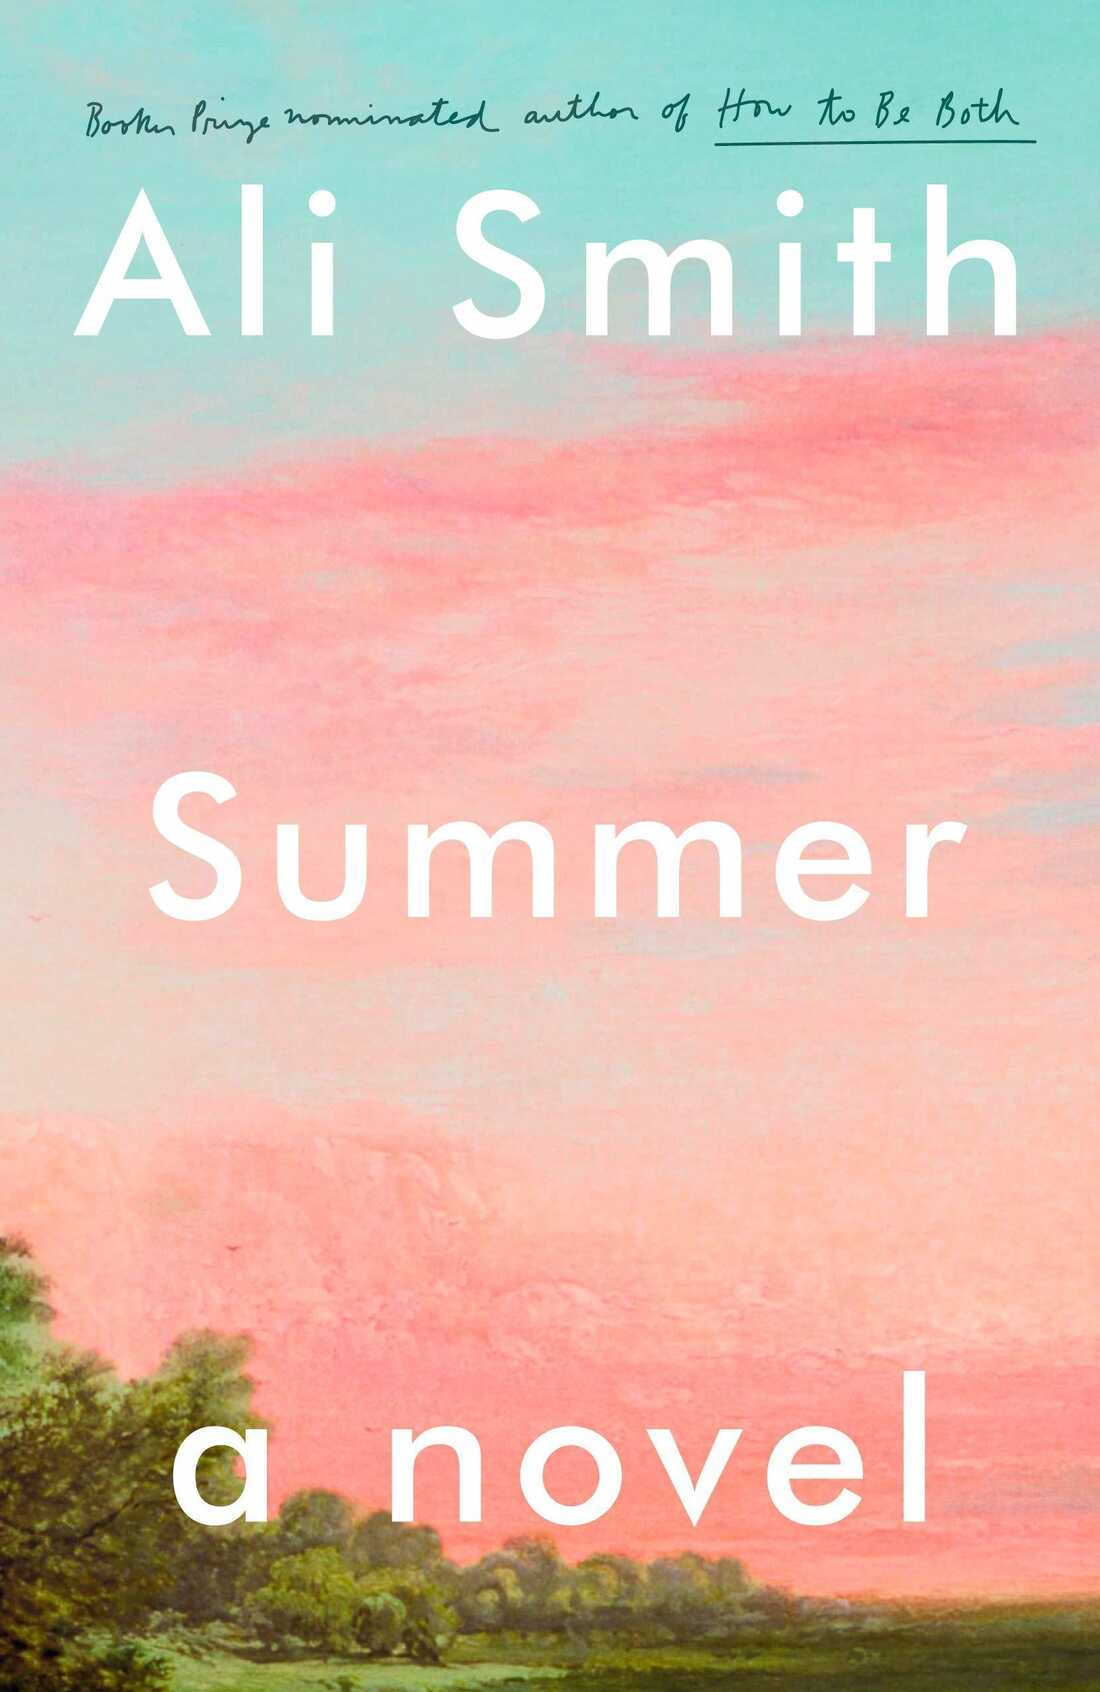 Summer, by Ali Smith